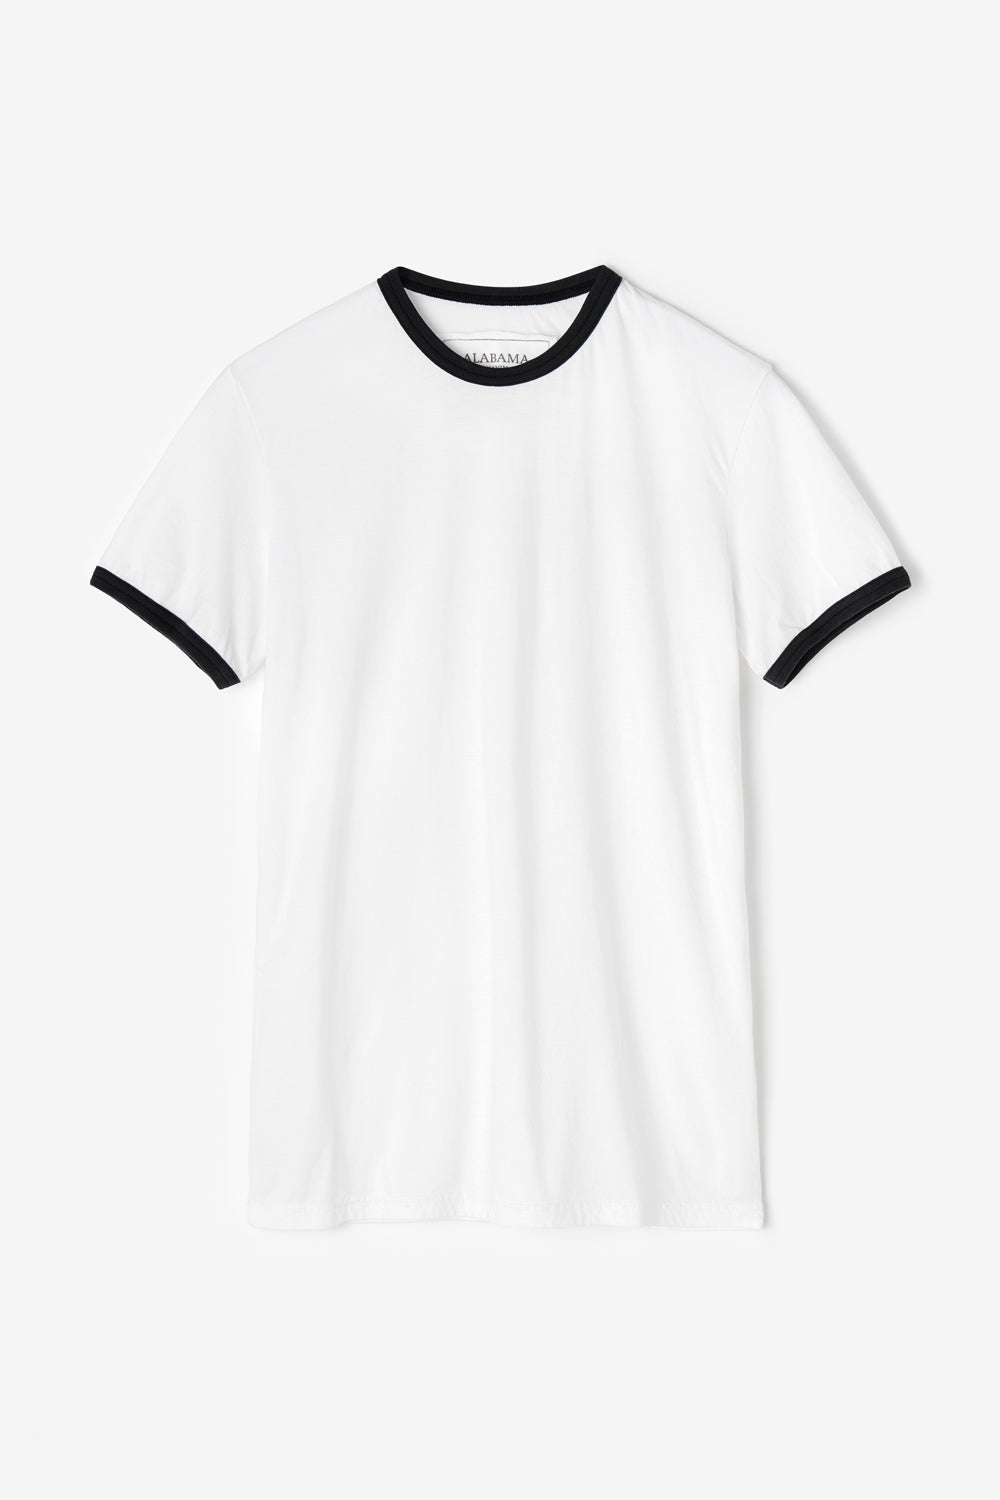 Alabama Chanin The Love Tee Unisex Organic Cotton T-Shirt with Contrast Ringer